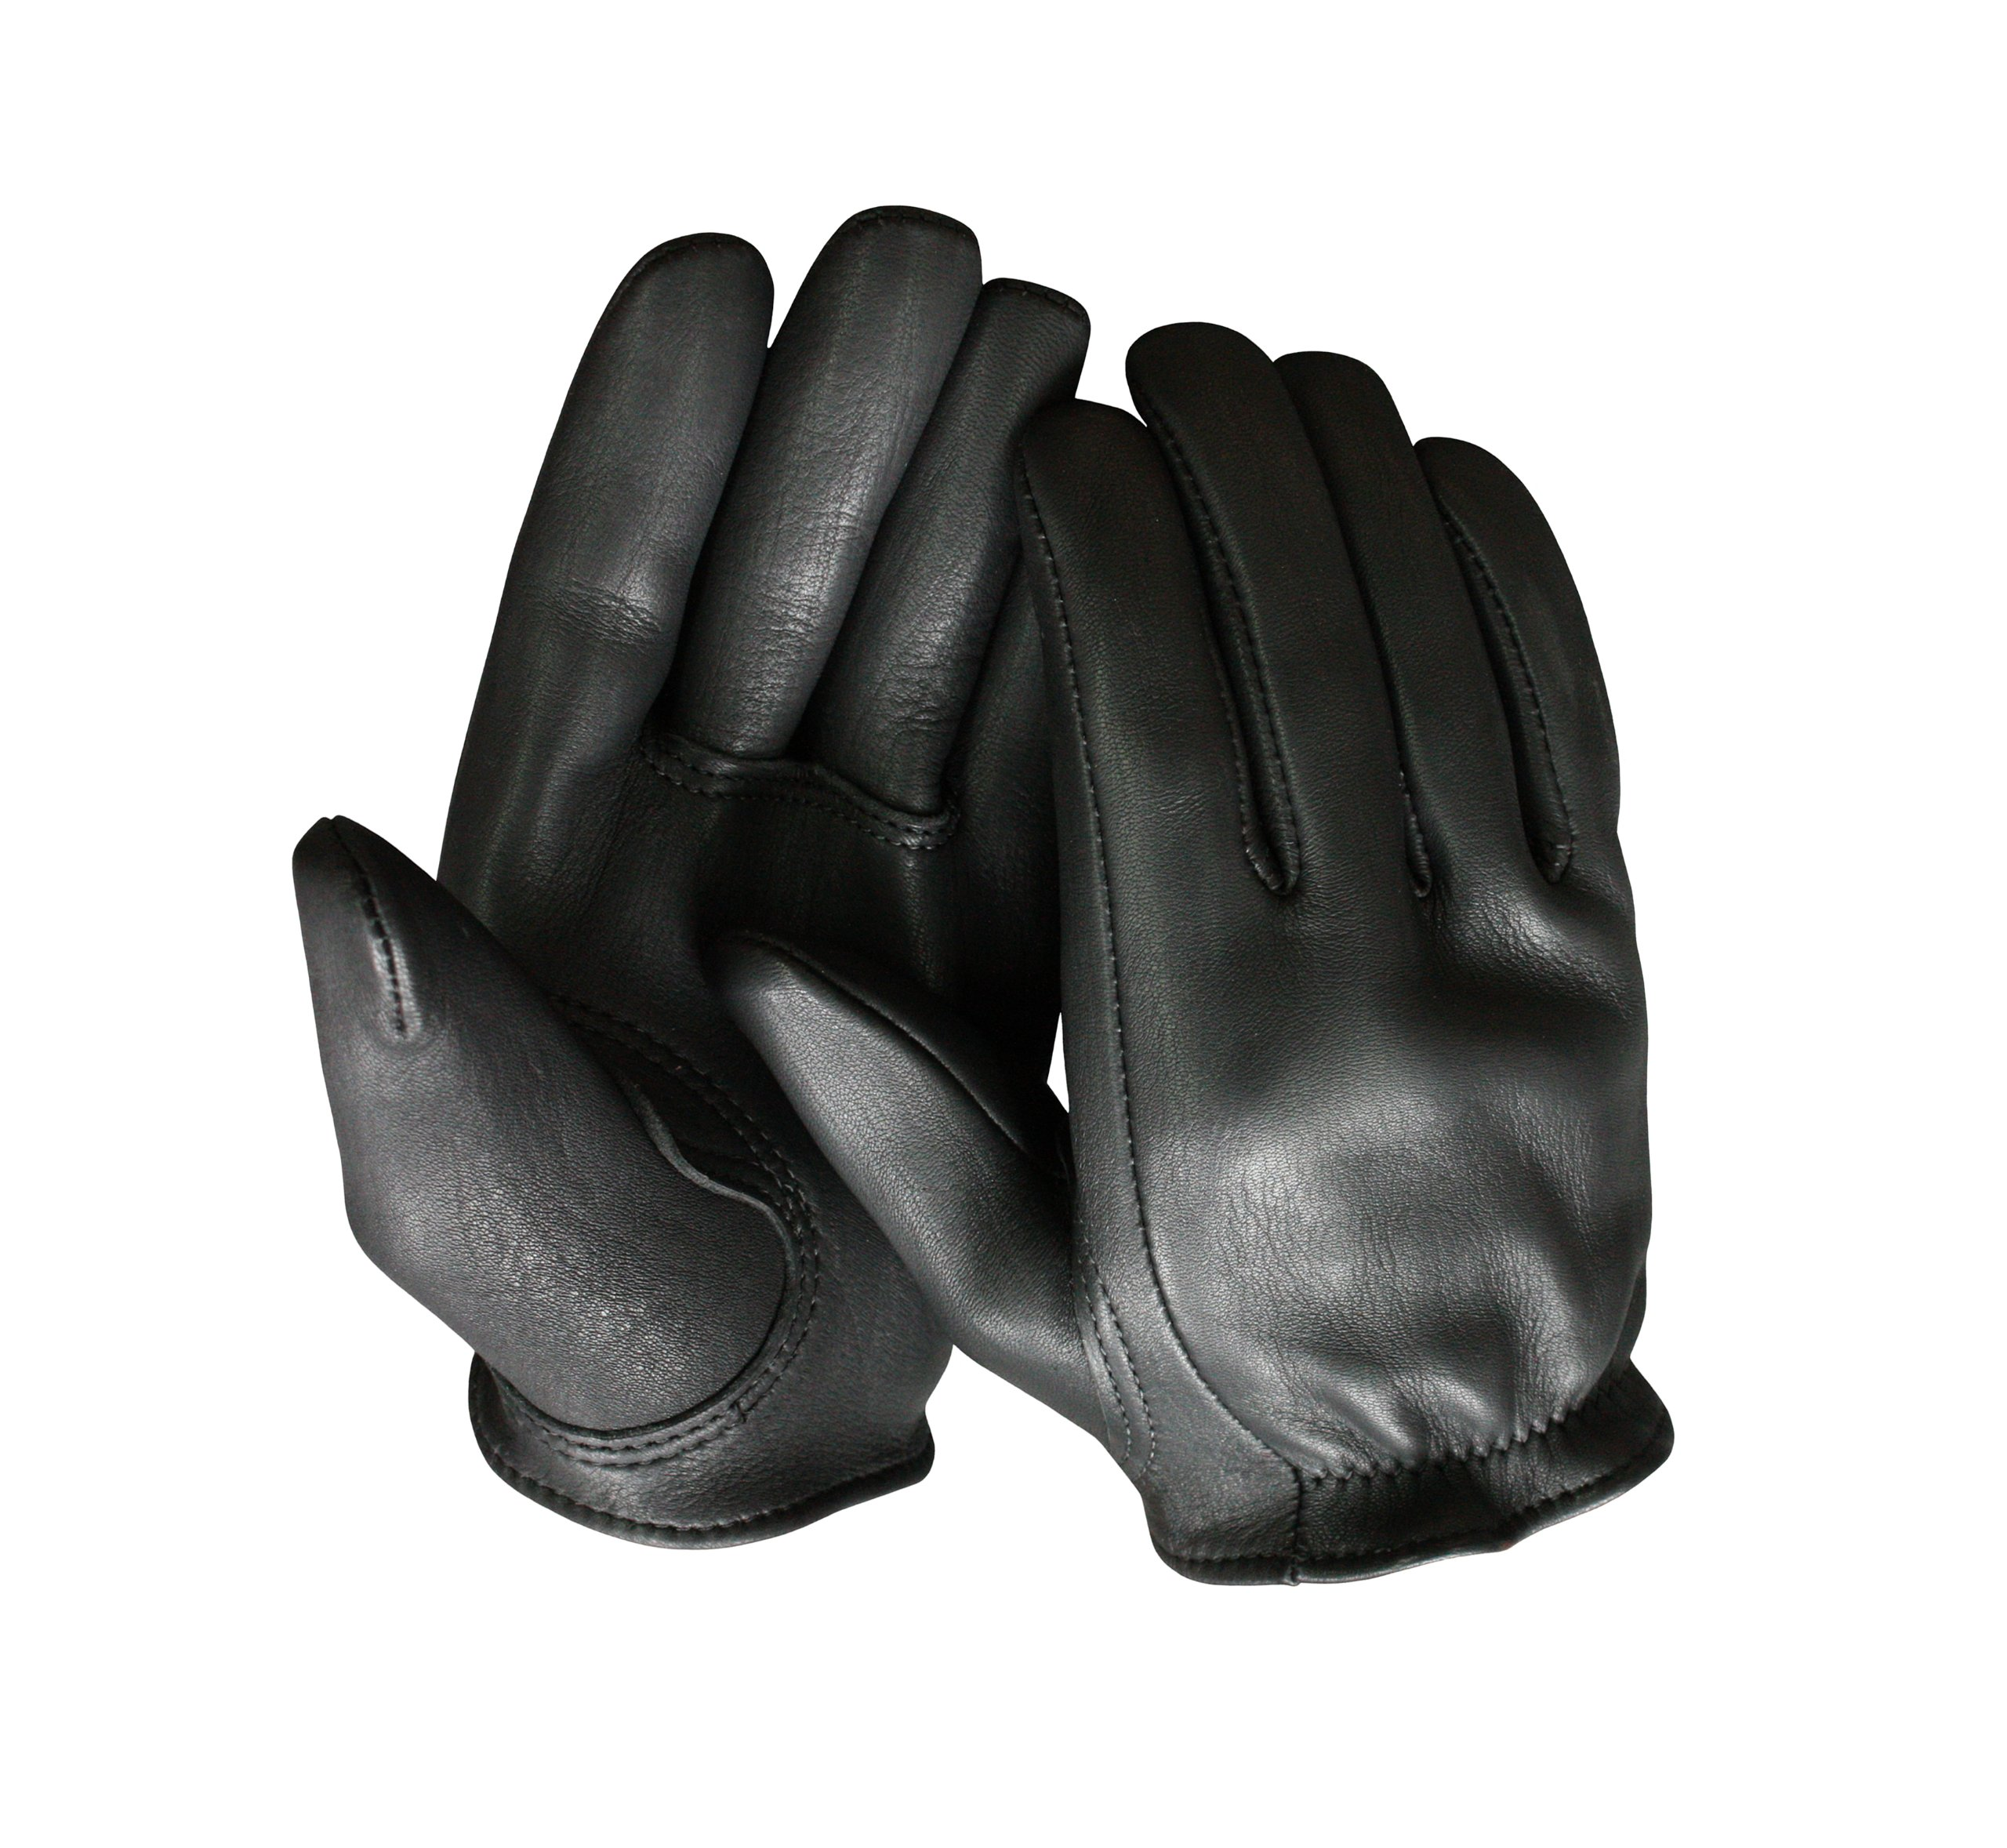 Churchill Classic Short Wrist Deerskin Motorcycle Gloves Made in America Black (Womens Large)